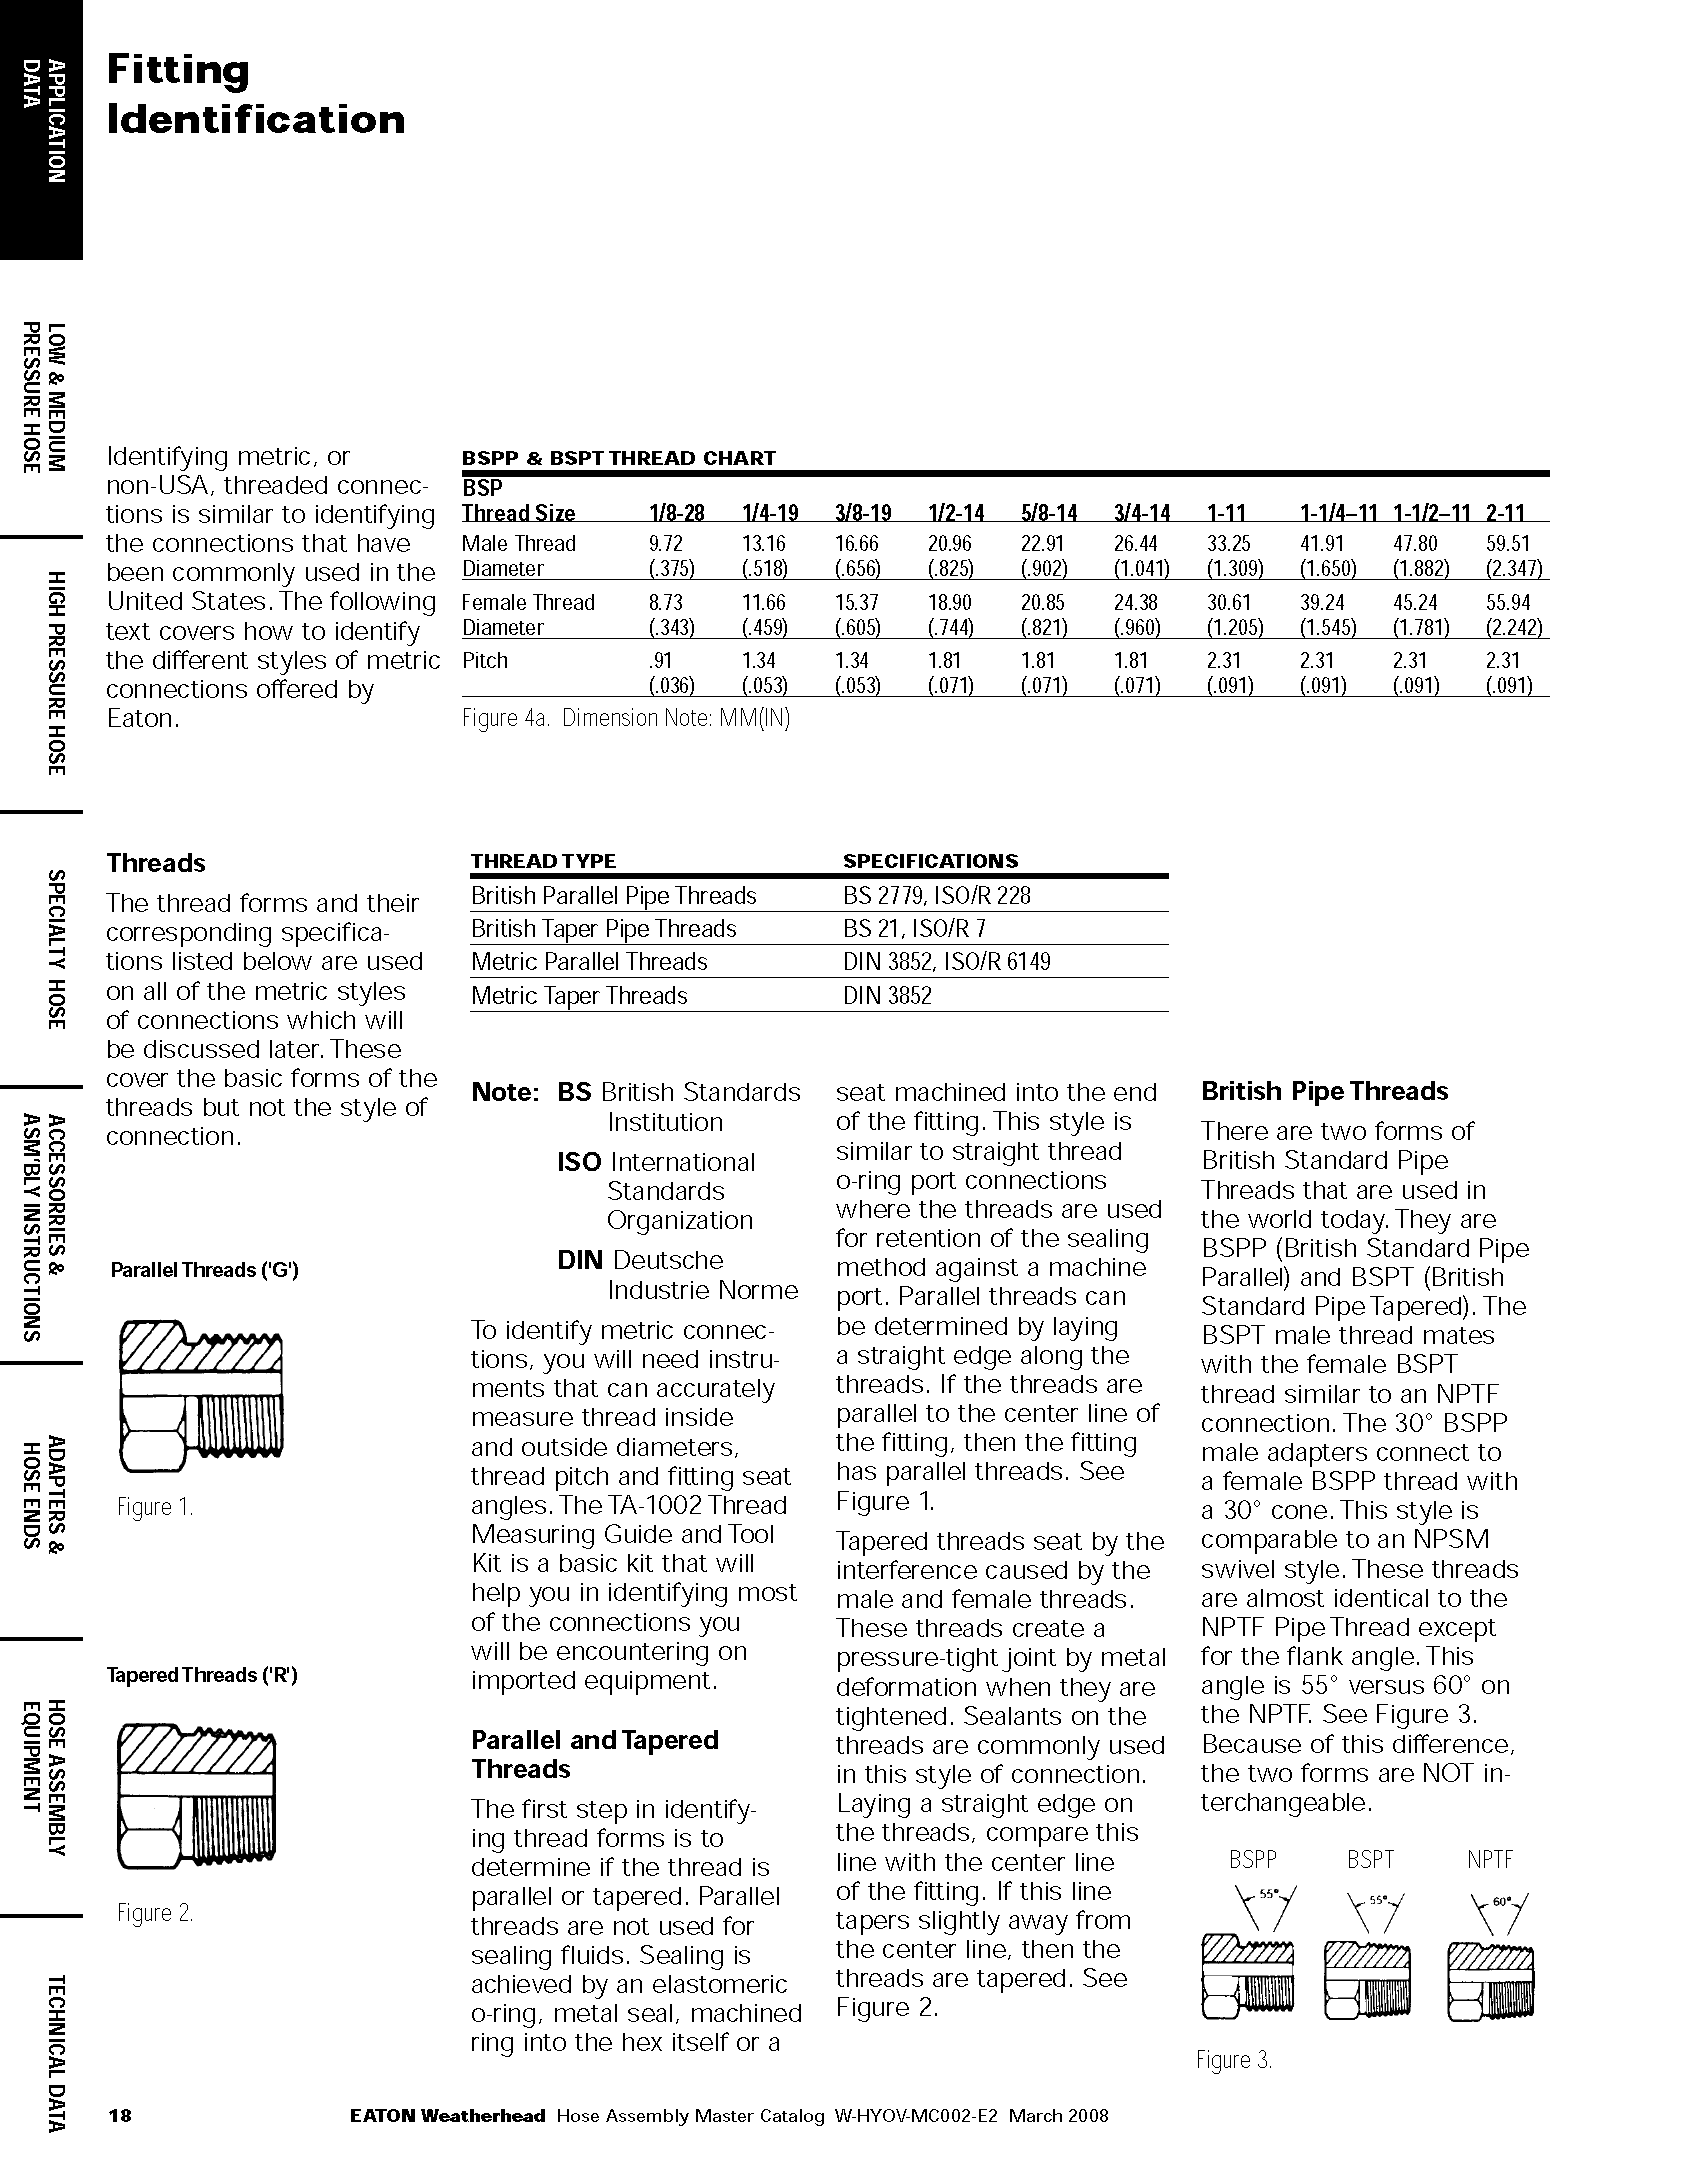 Hose selection guide Page 3